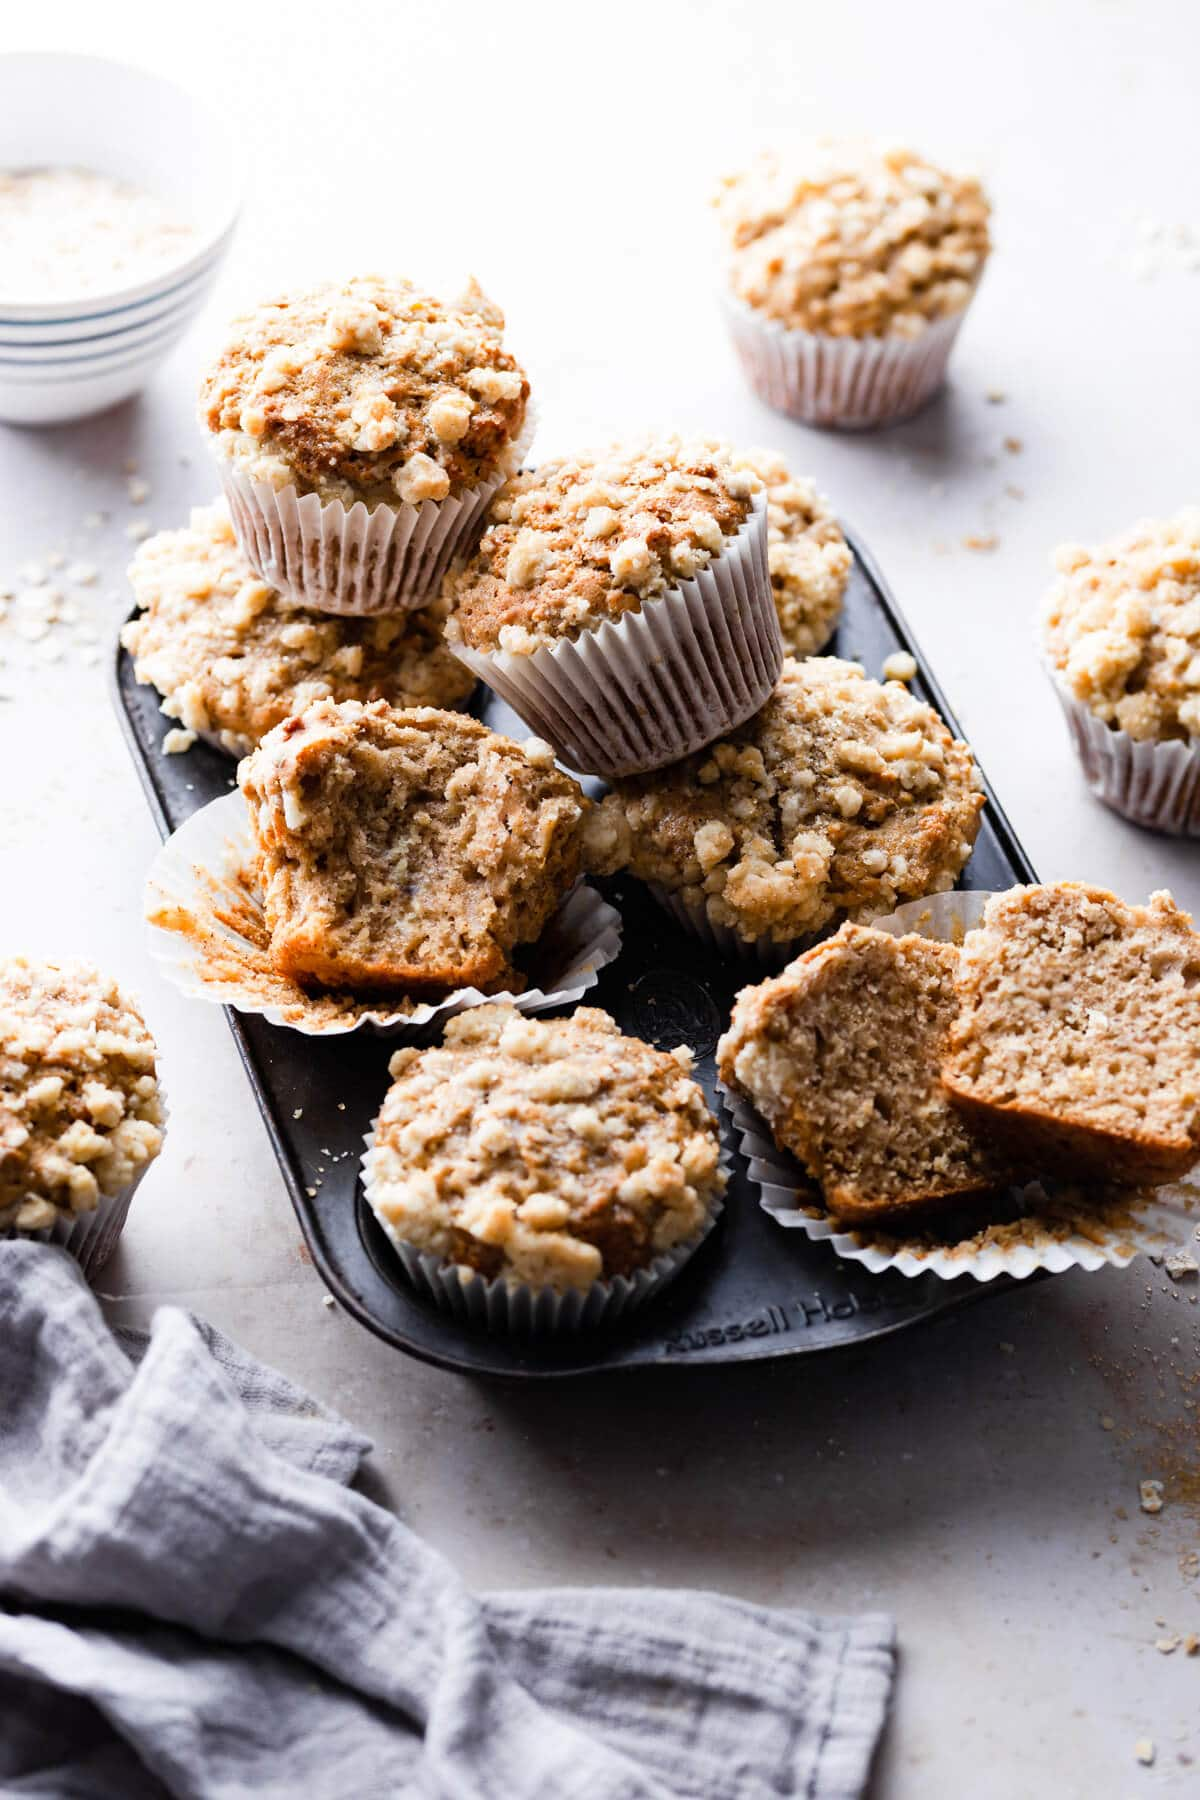 45 degree angle shot of cinnamon oatmeal muffins piled up on a muffin tin